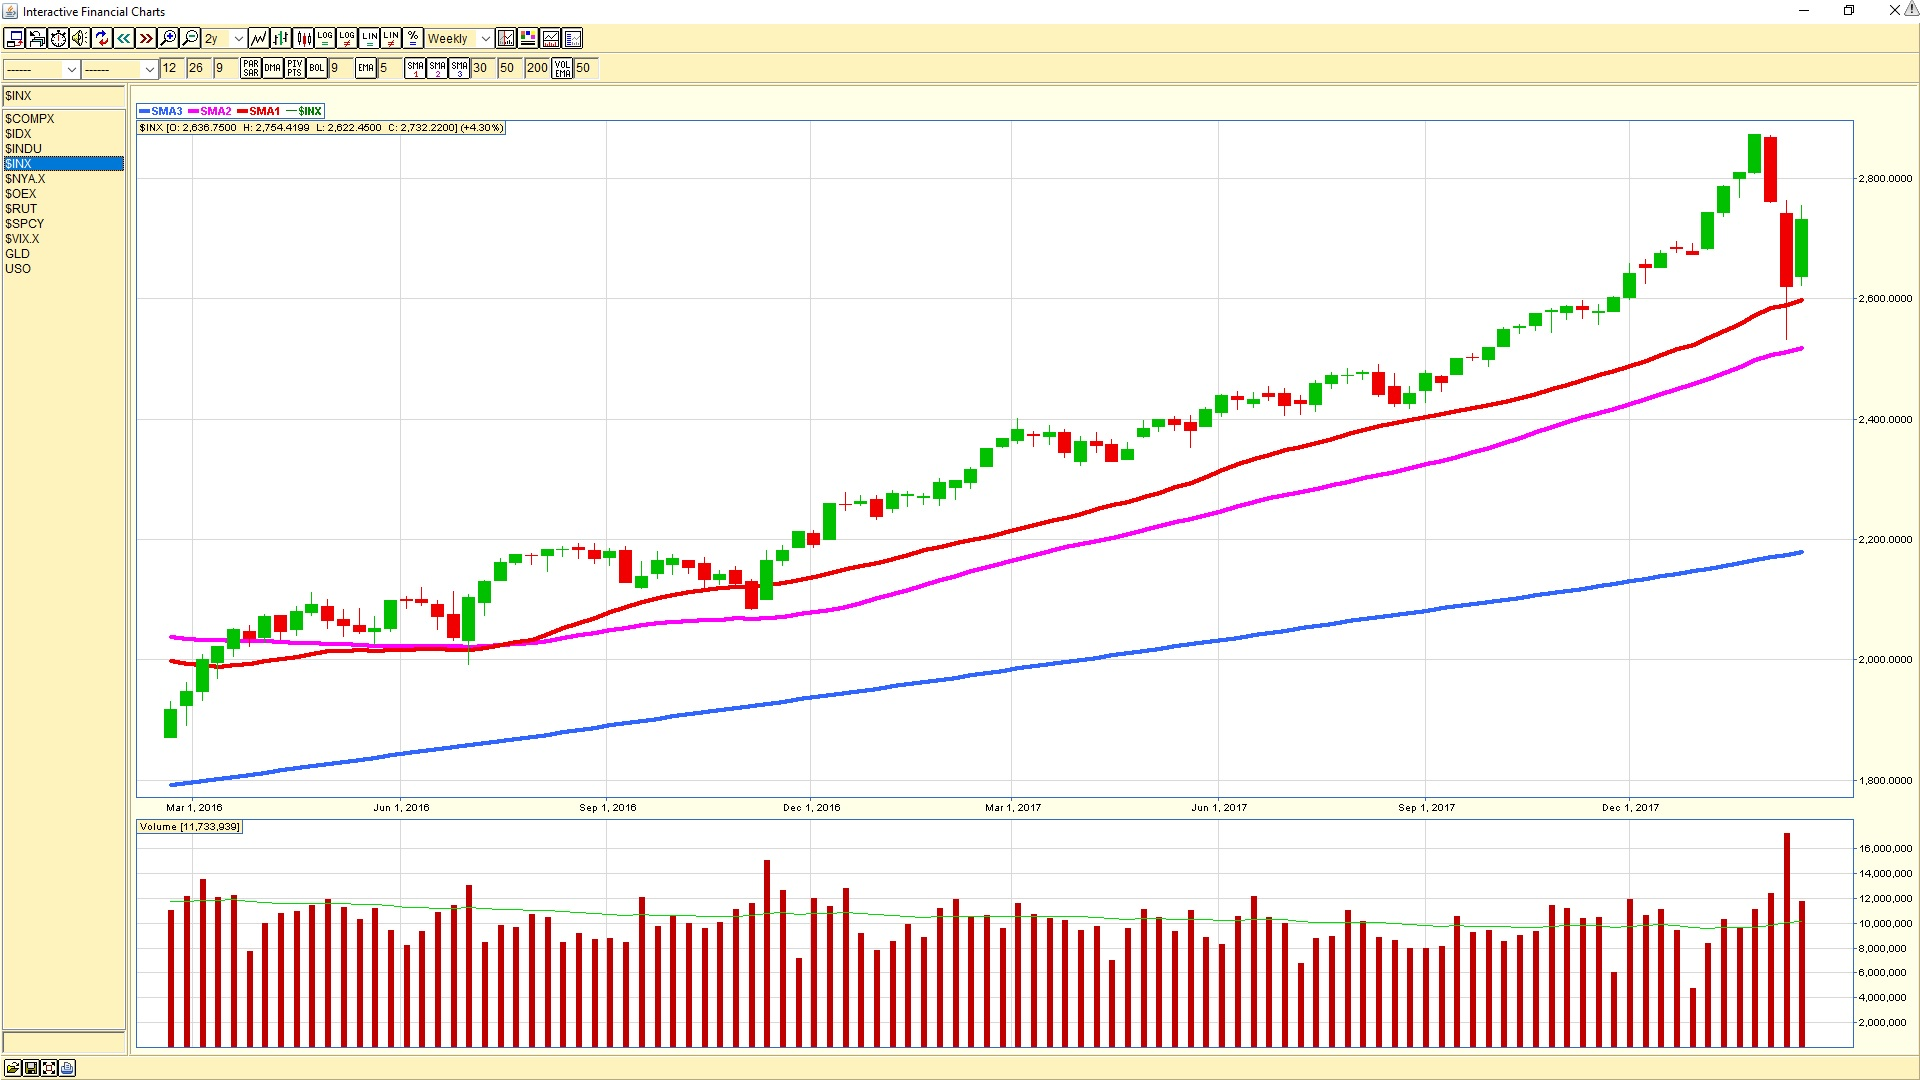 S&P 500 weekly chart